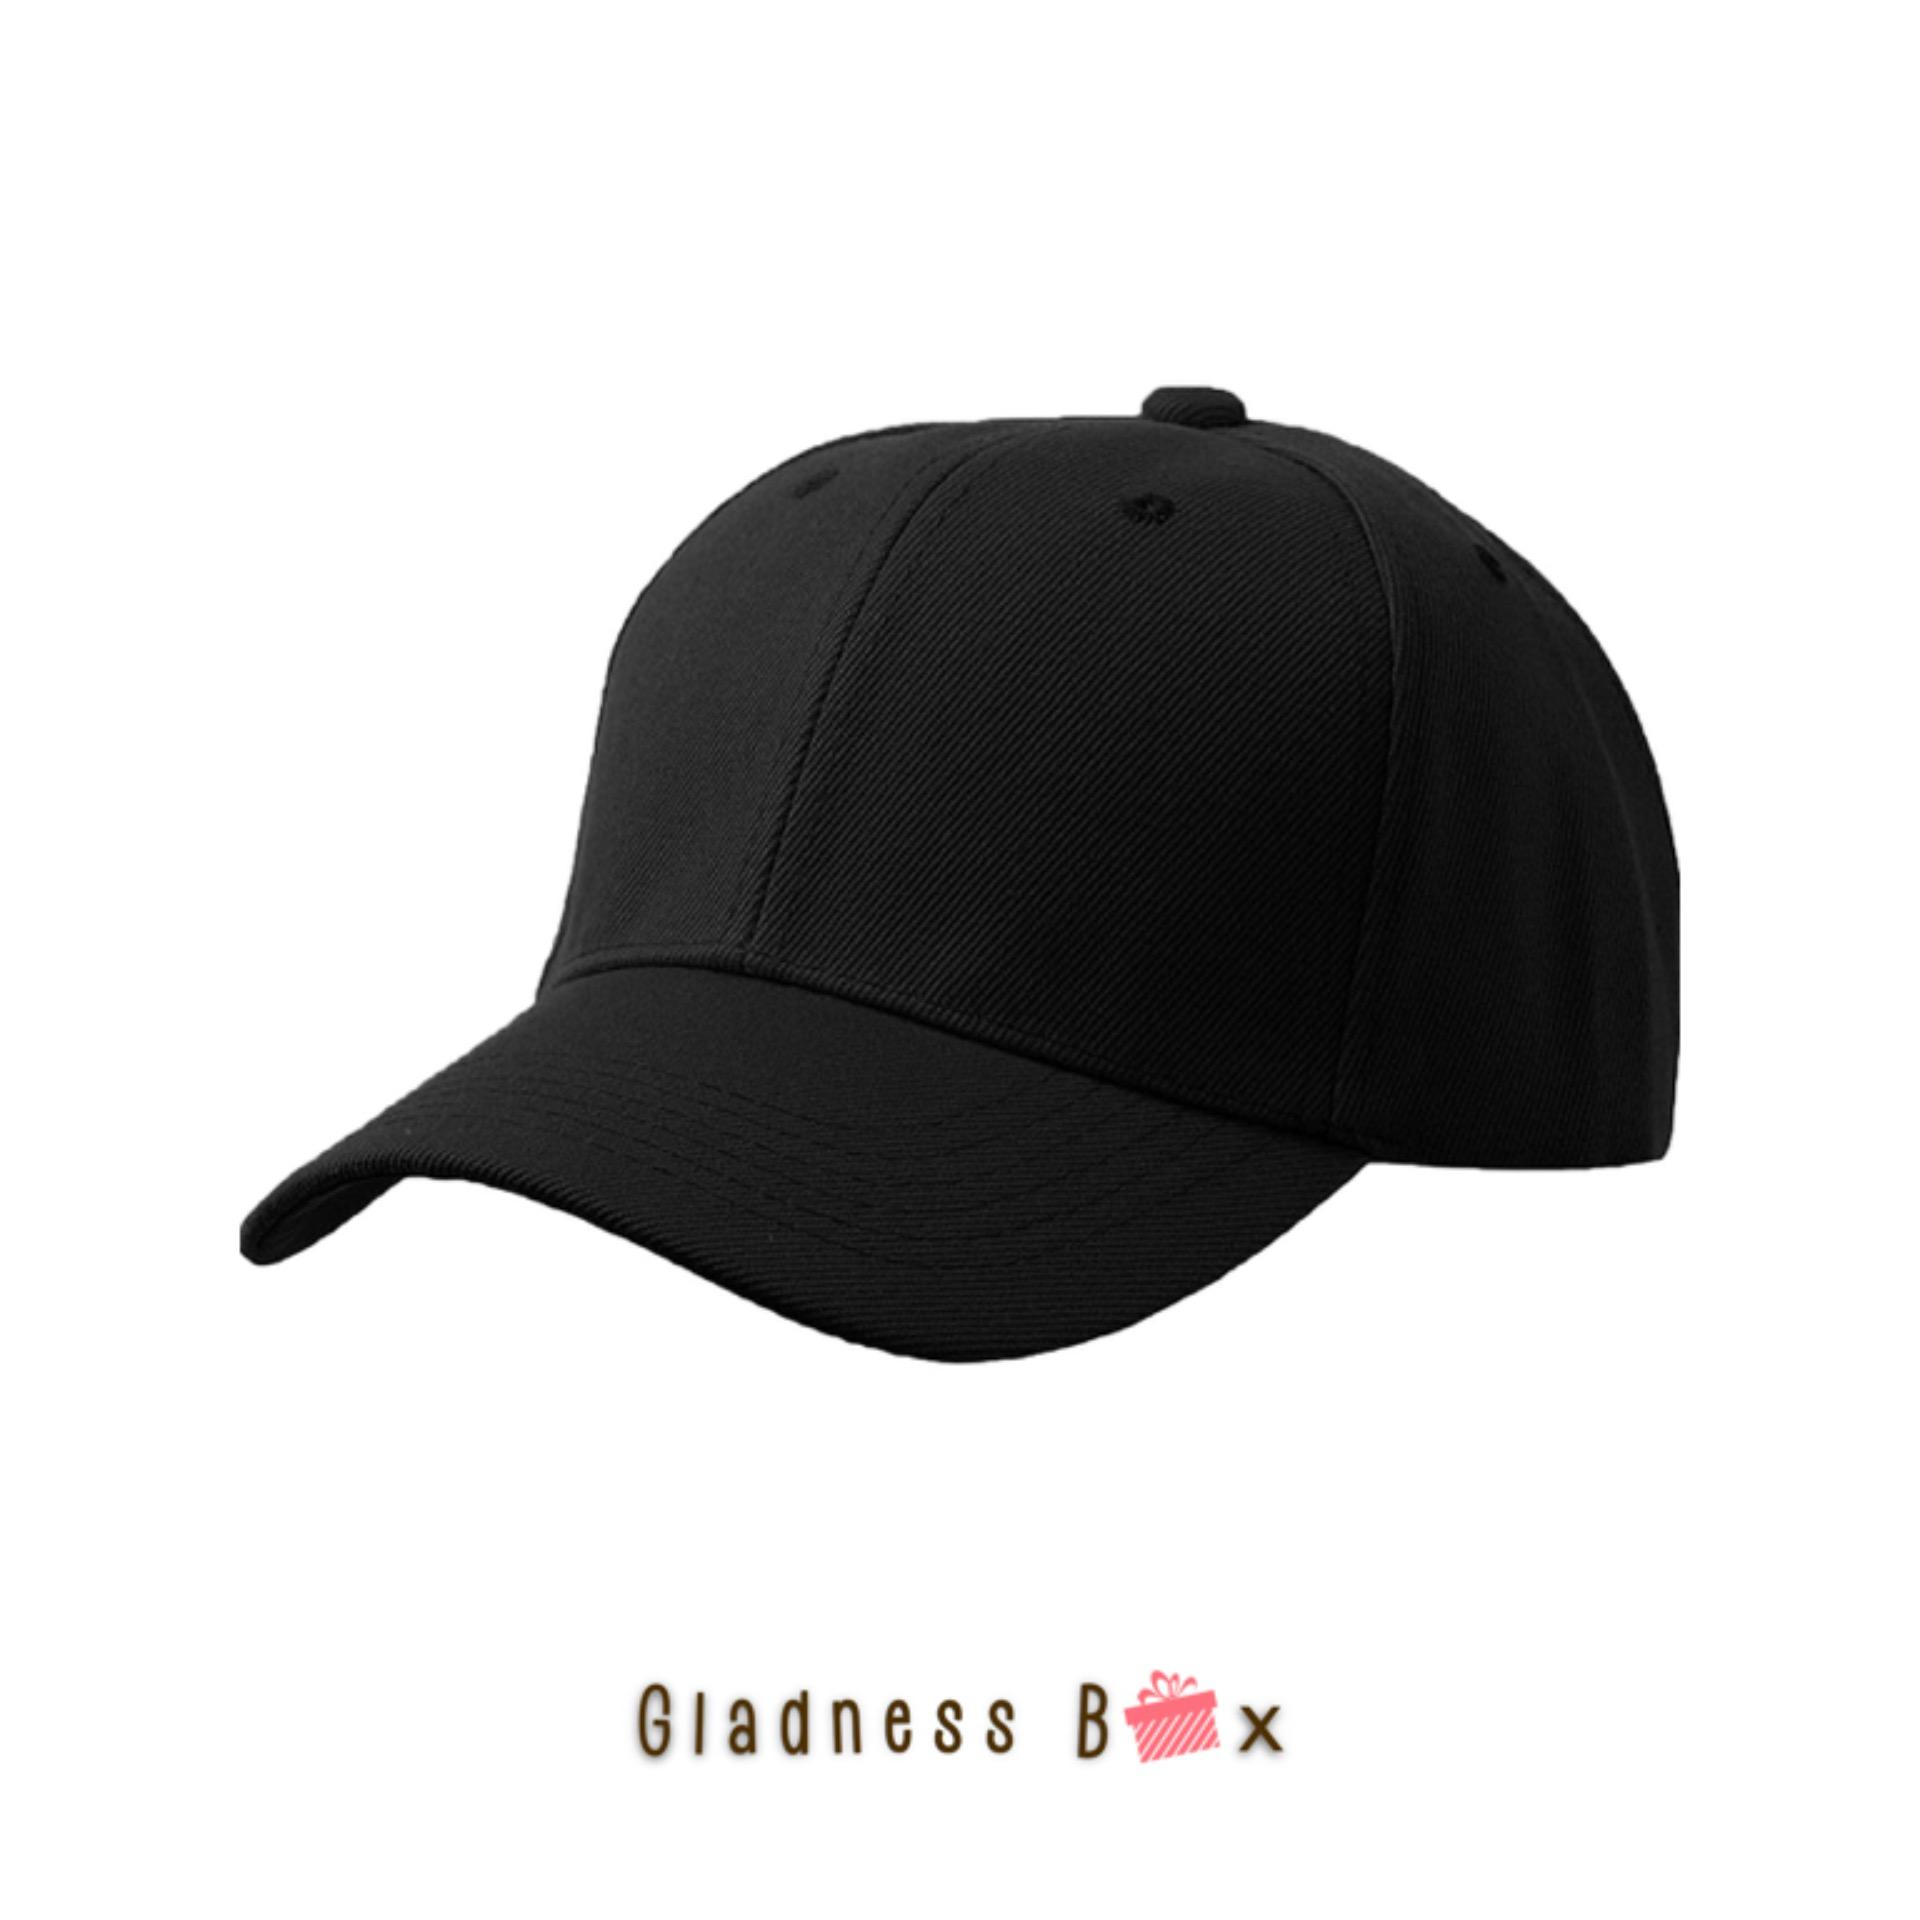 15df9461622 Gladness Box High Quality Plain Baseball Cap for Men Women Unisex